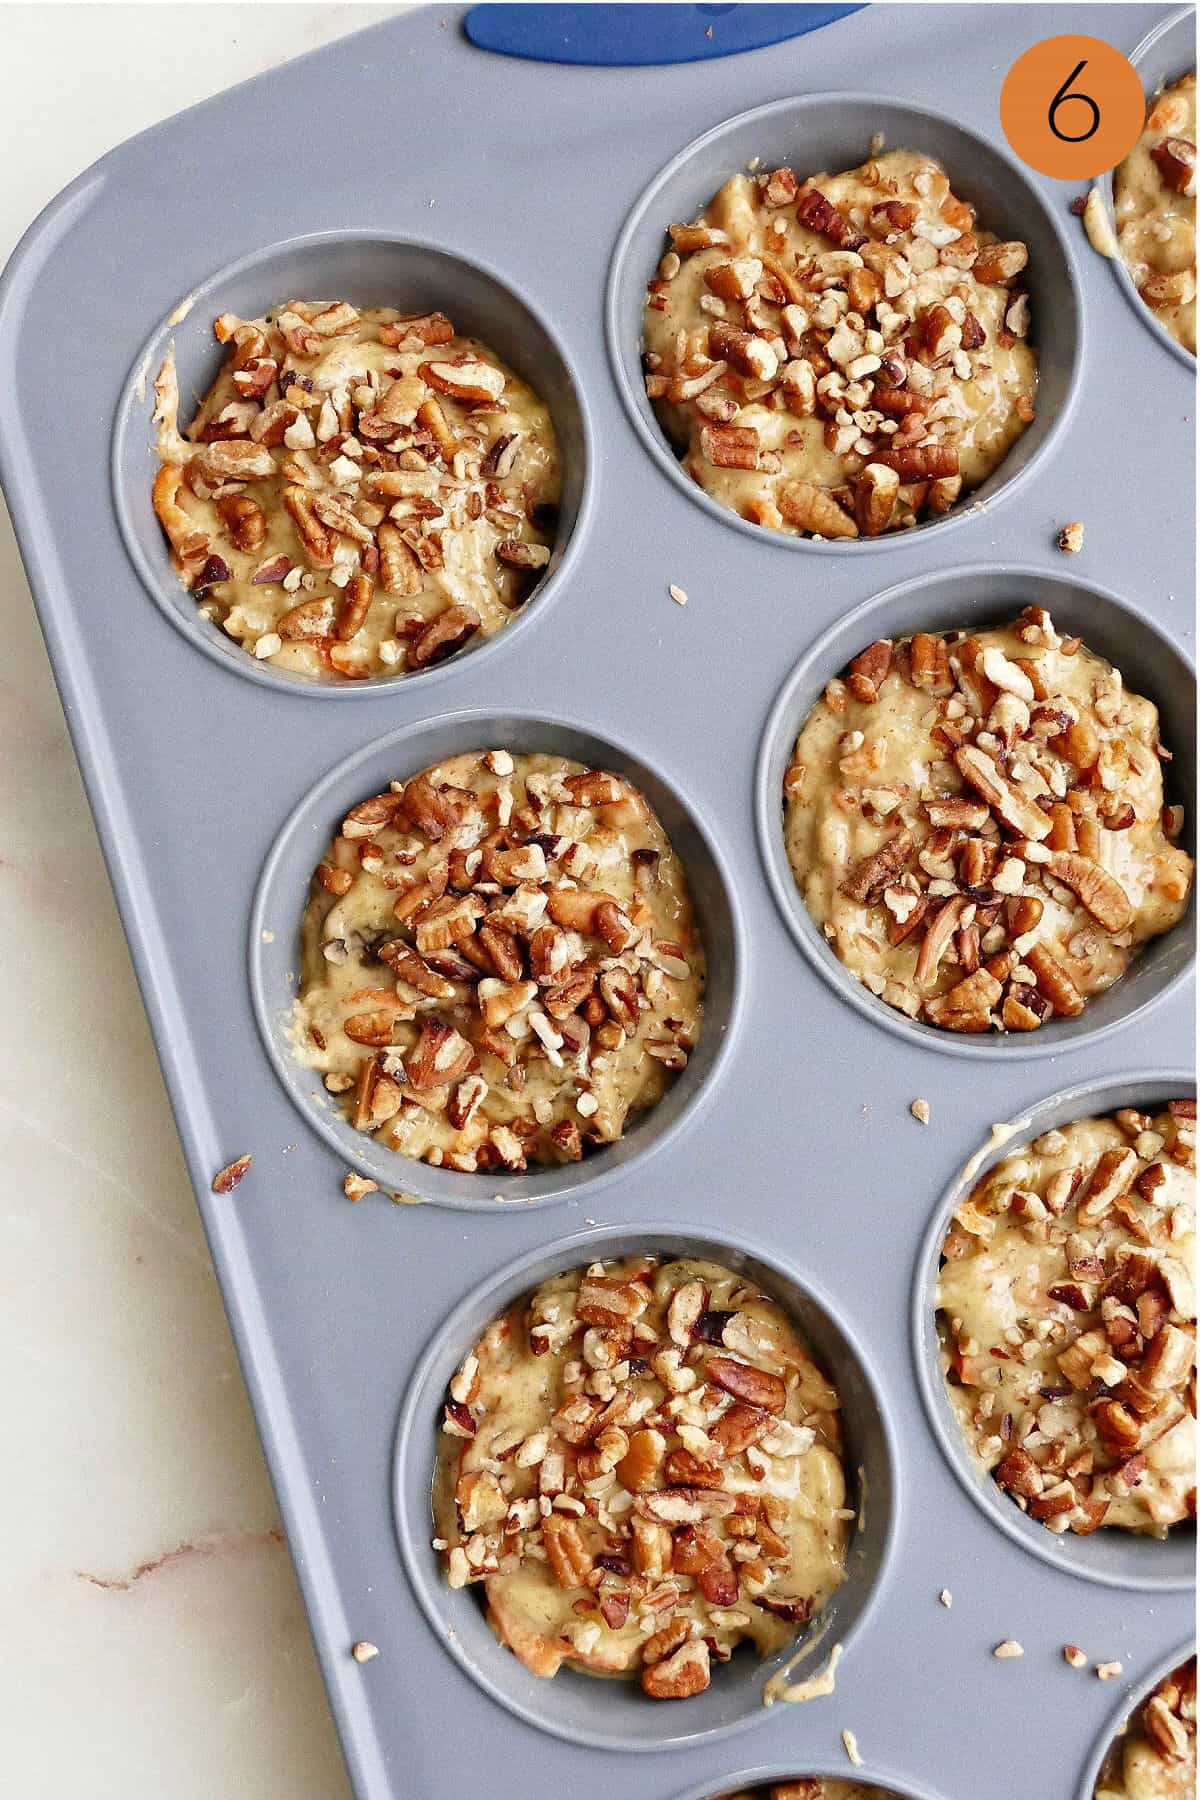 half of a muffin pan filled with batter and topped with chopped pecans